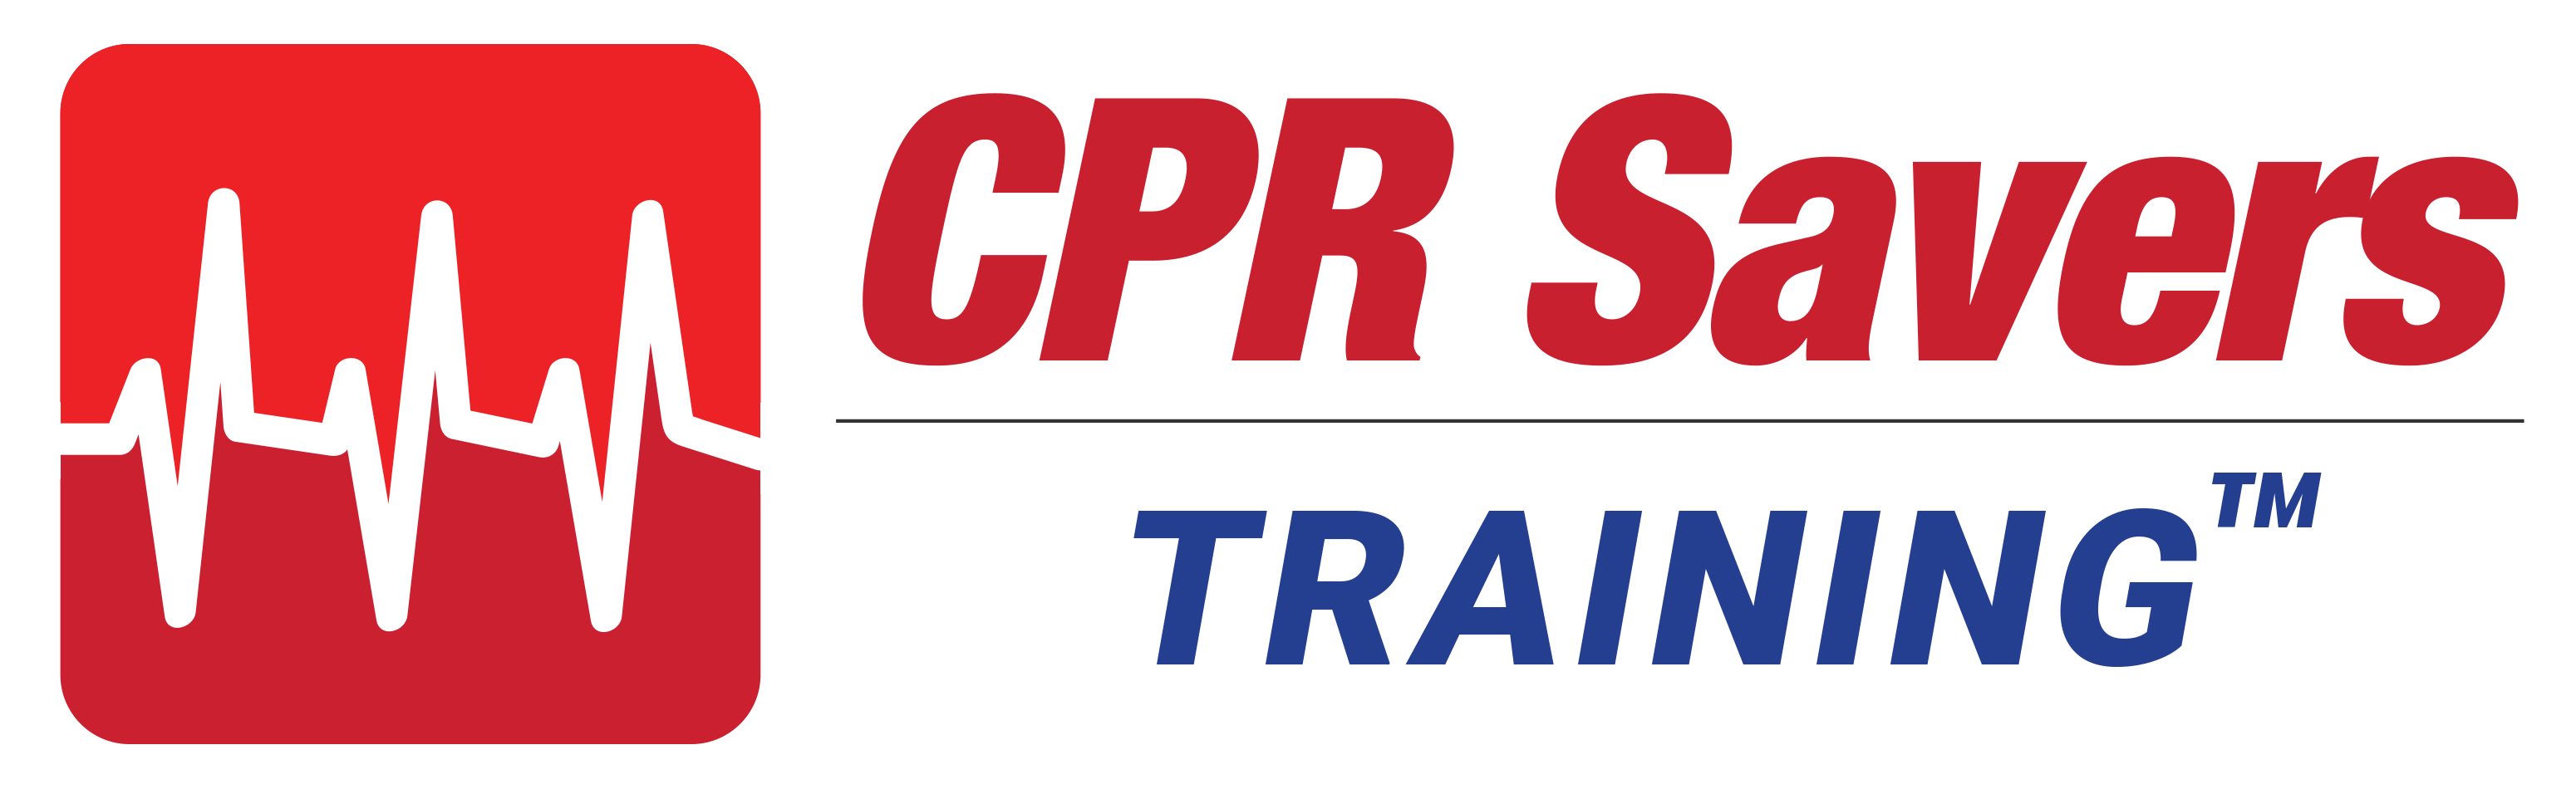 CPR Savers Training Courses